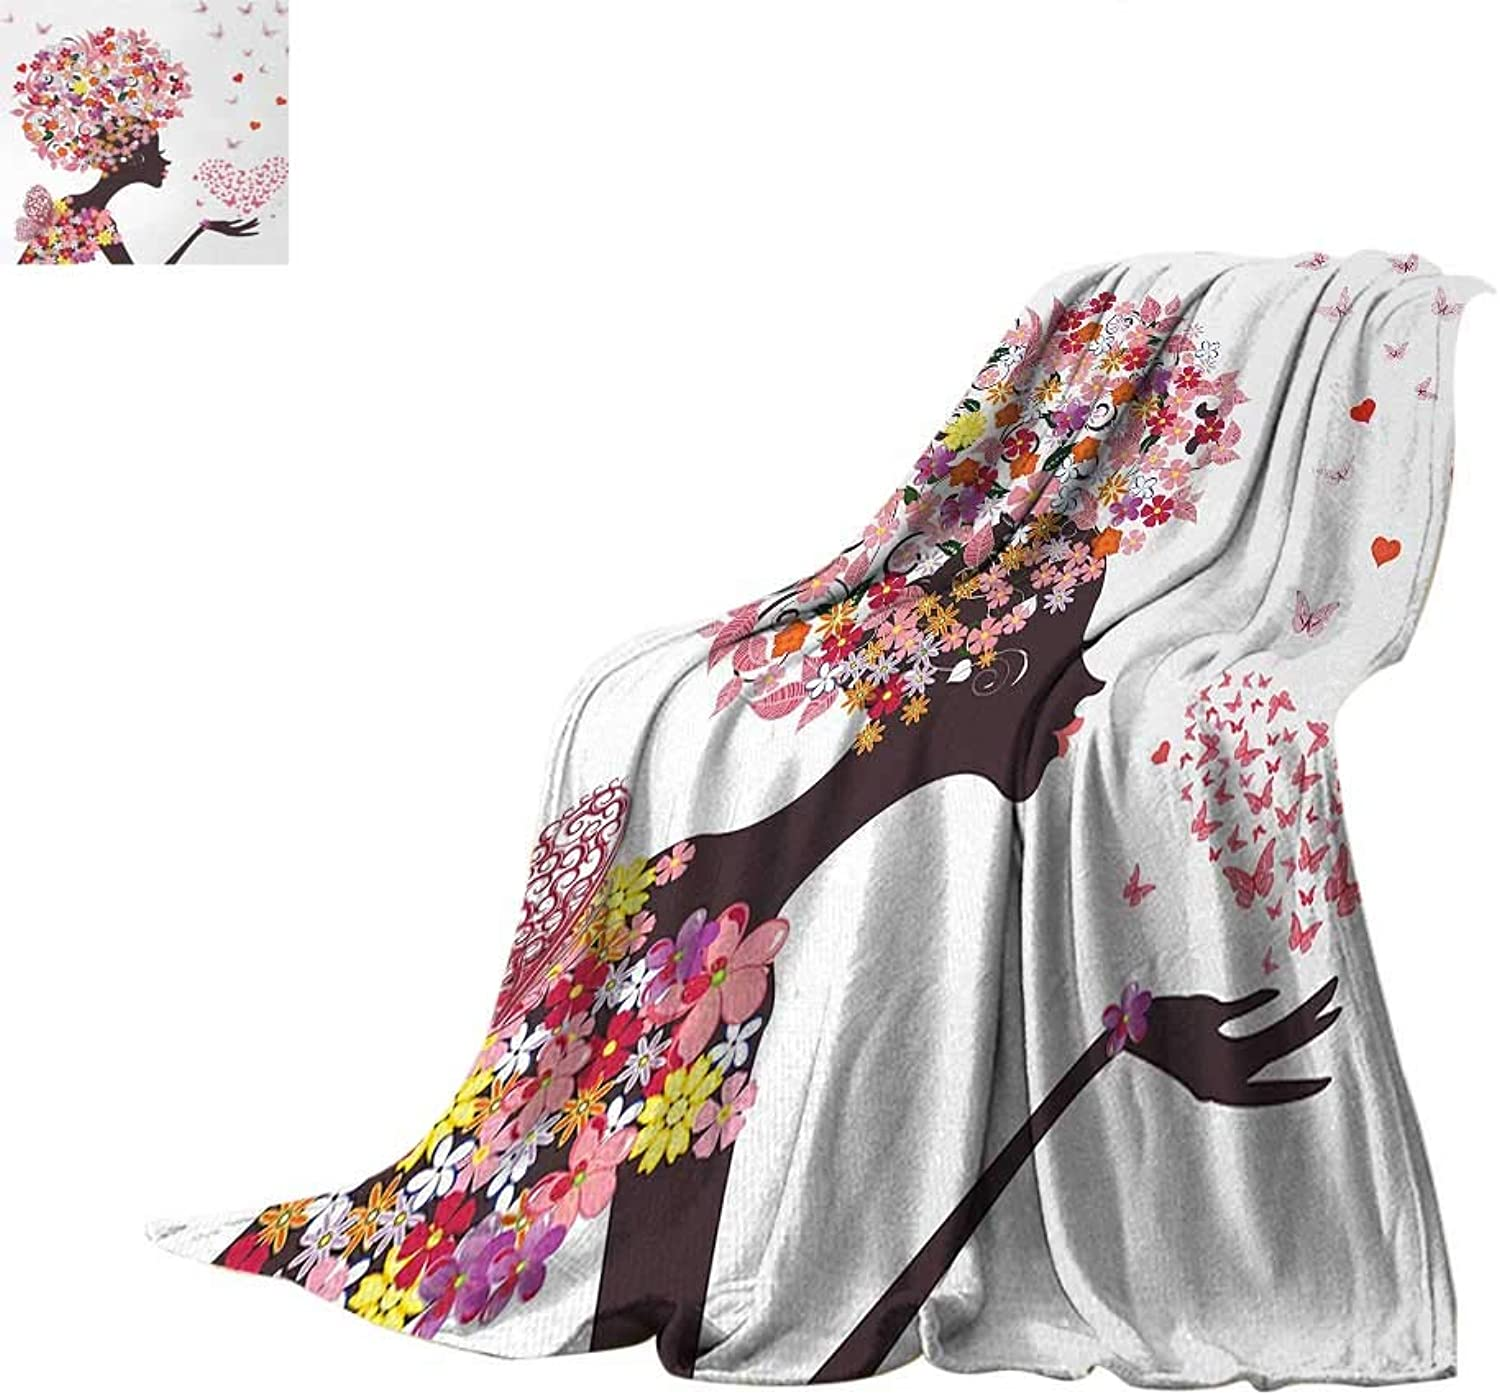 Butterflies Digital Printing Blanket Girl with a Heart of Butterflies Enjoying Blossoms Summertime Fantasy Happy Print Artwork Image 60 x50  Multicolor